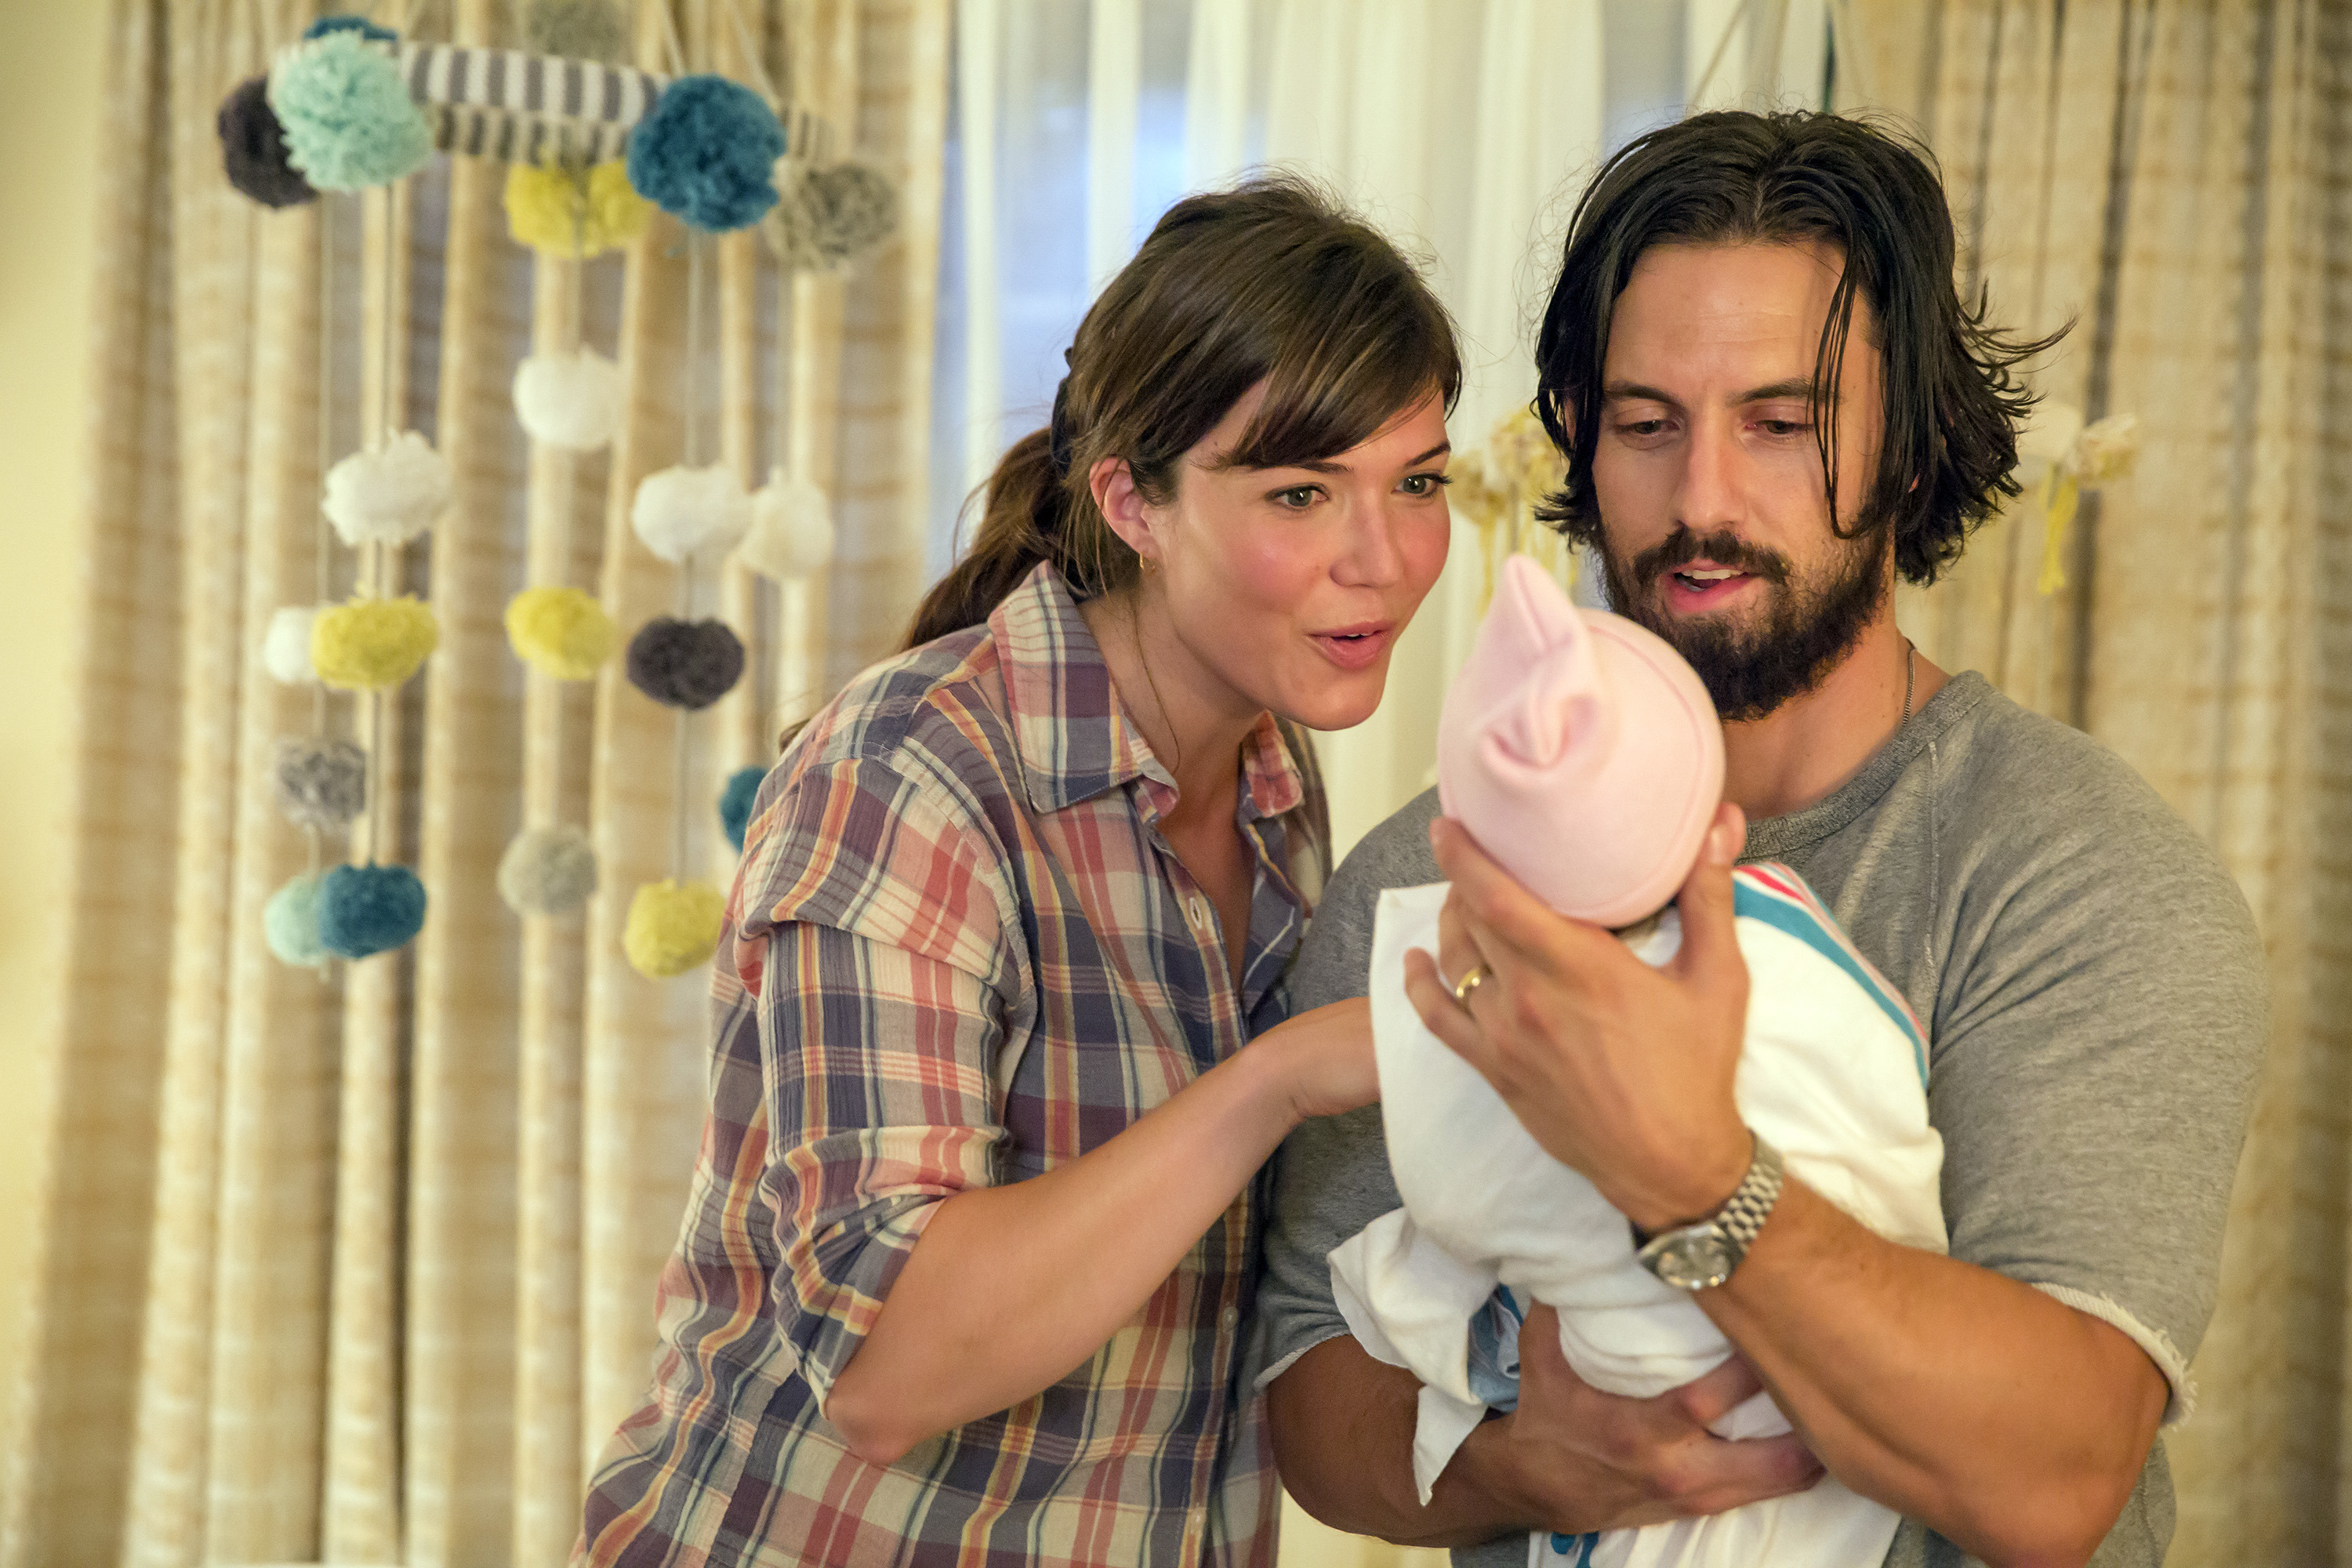 Mandy Moore as Rebecca and Milo Ventimiglia as Jack in 'This is Us.' (Ron Batzdorff/NBC)